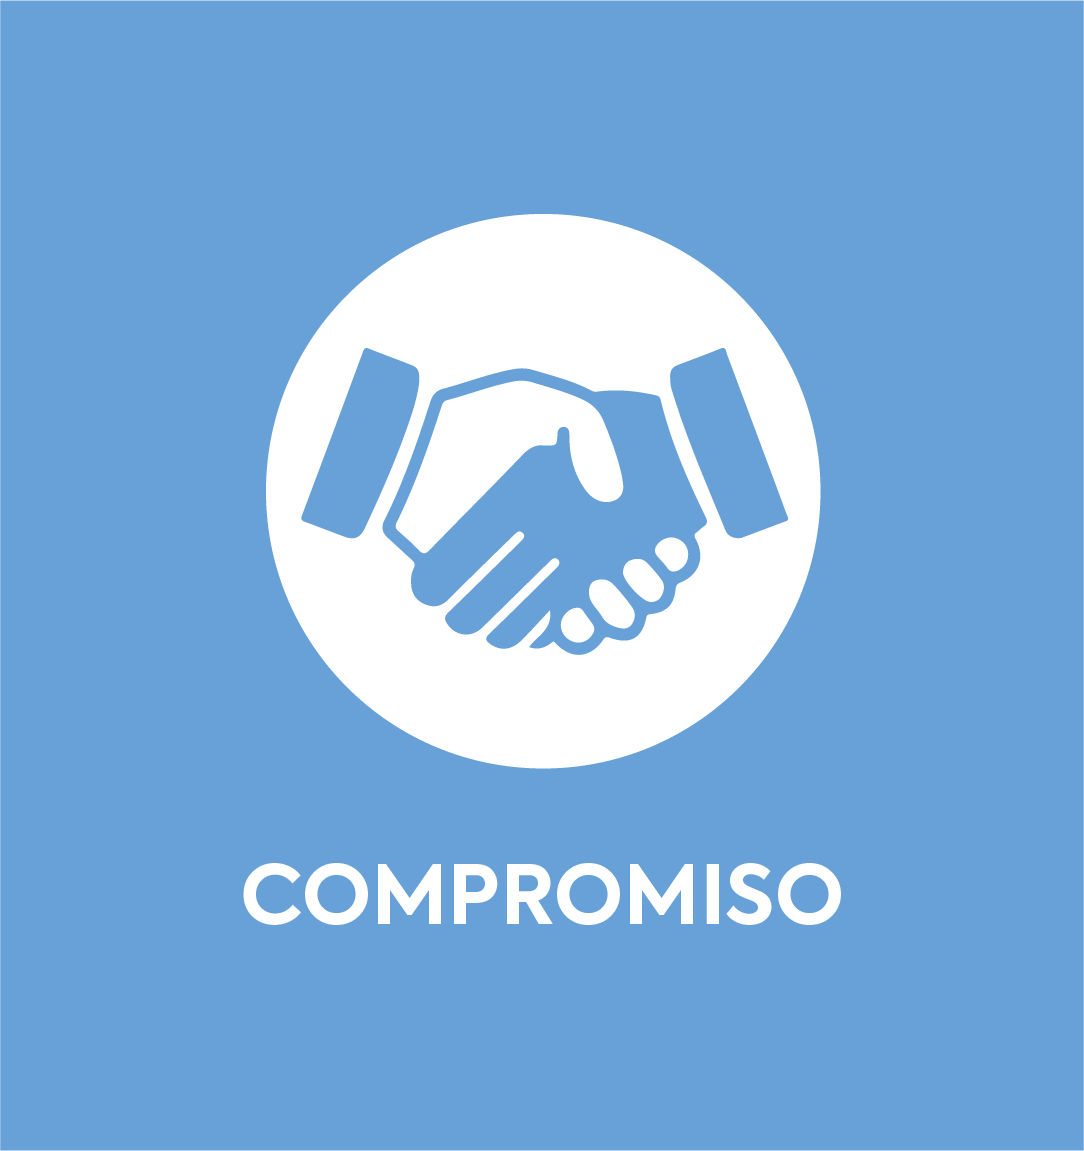 compromiso_cl